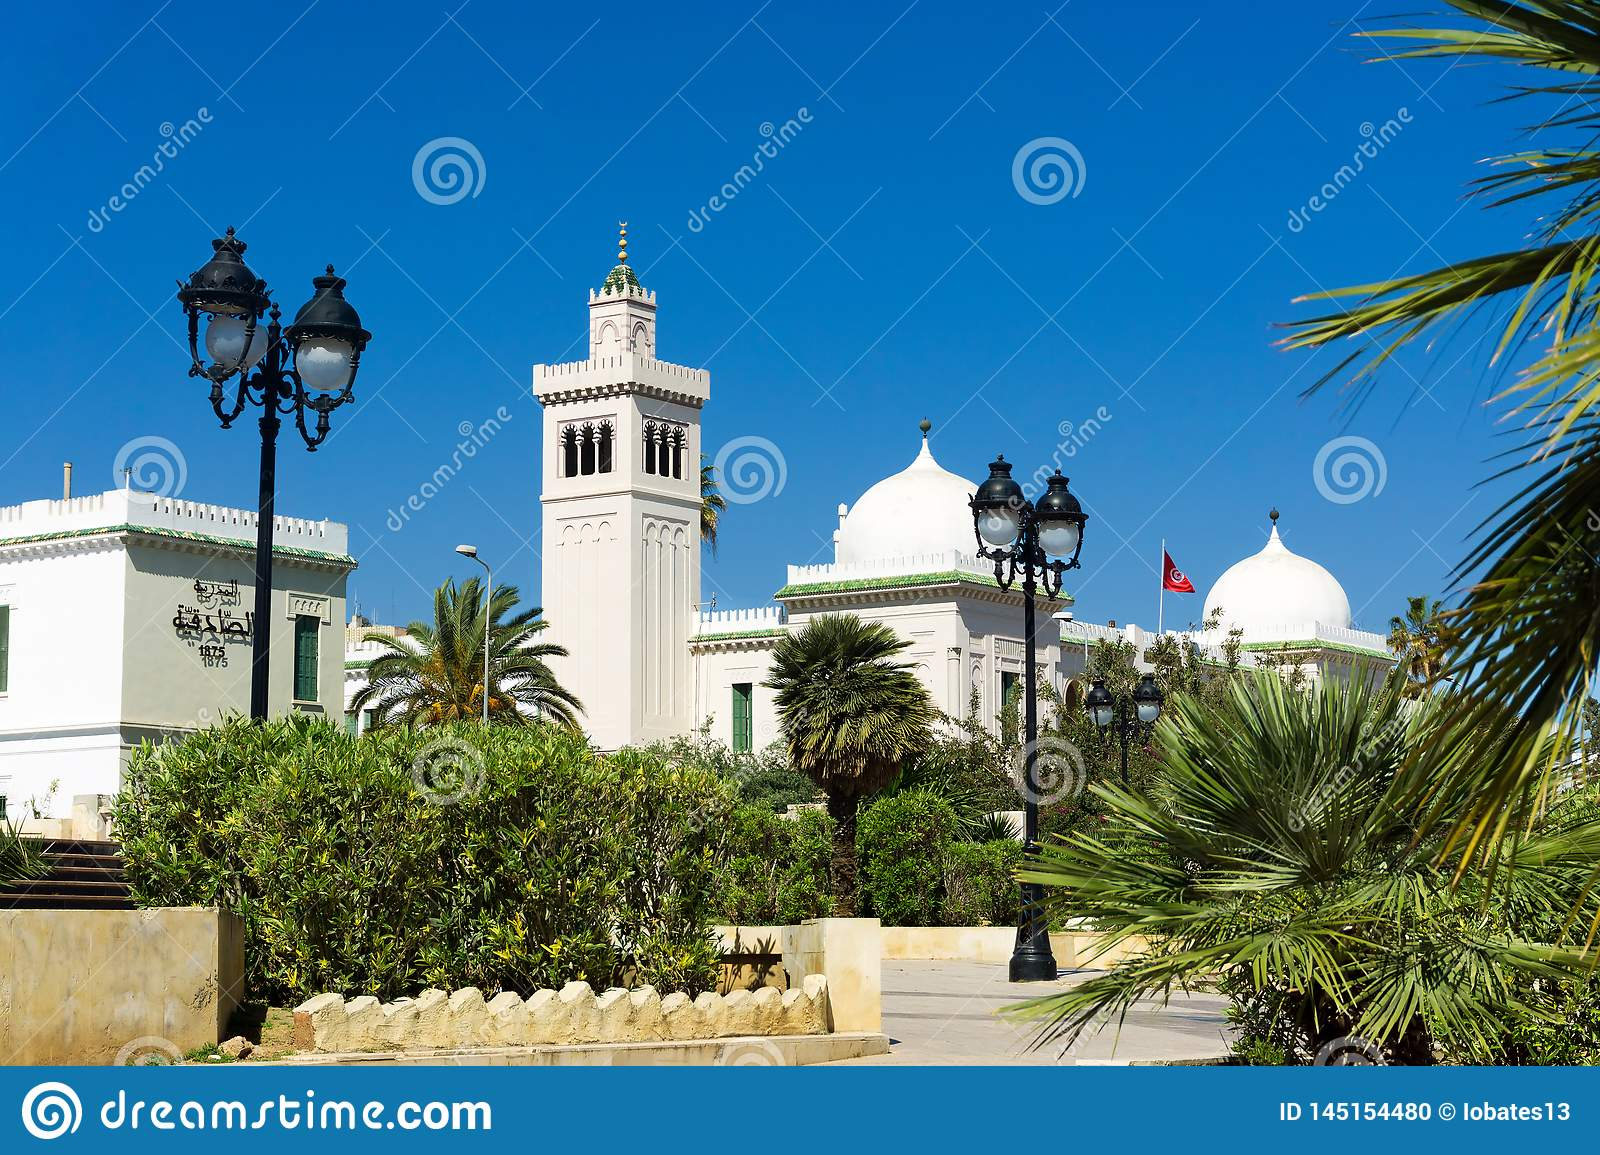 Government building in Kasbah Square in Tunis, Tunisia